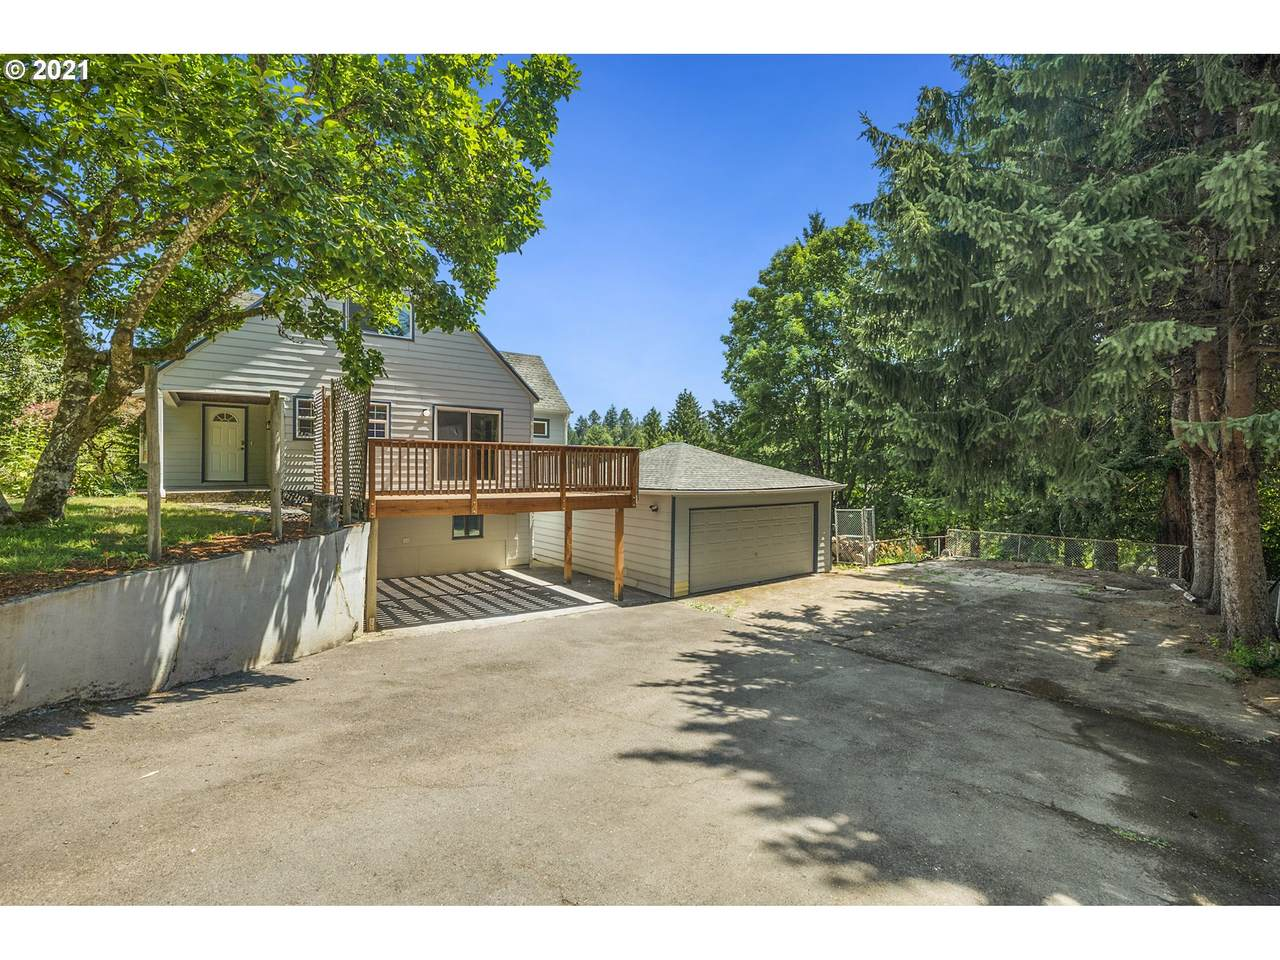 2834 Taylors Ferry Rd - Photo 1